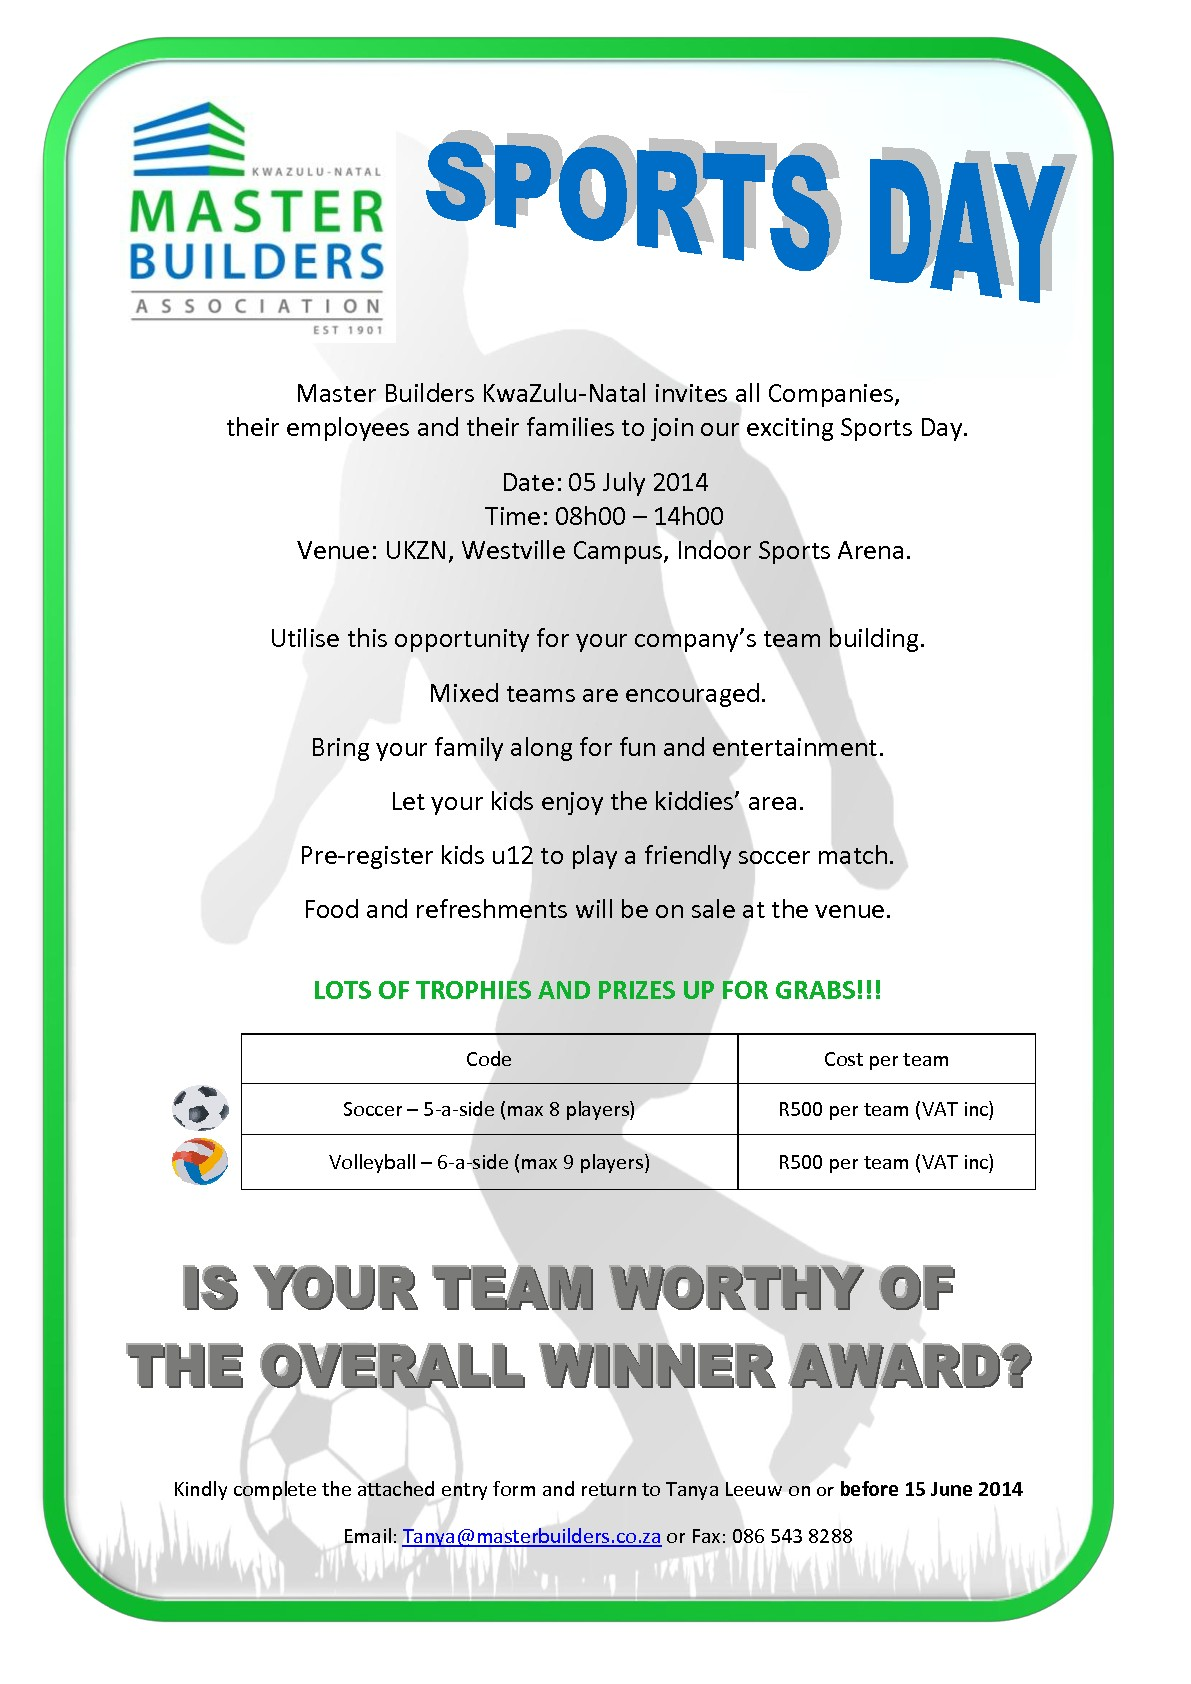 Invitation card format for sports day images invitation sample and invitation card format for sports day choice image invitation sample invitation card format for sports day stopboris Images